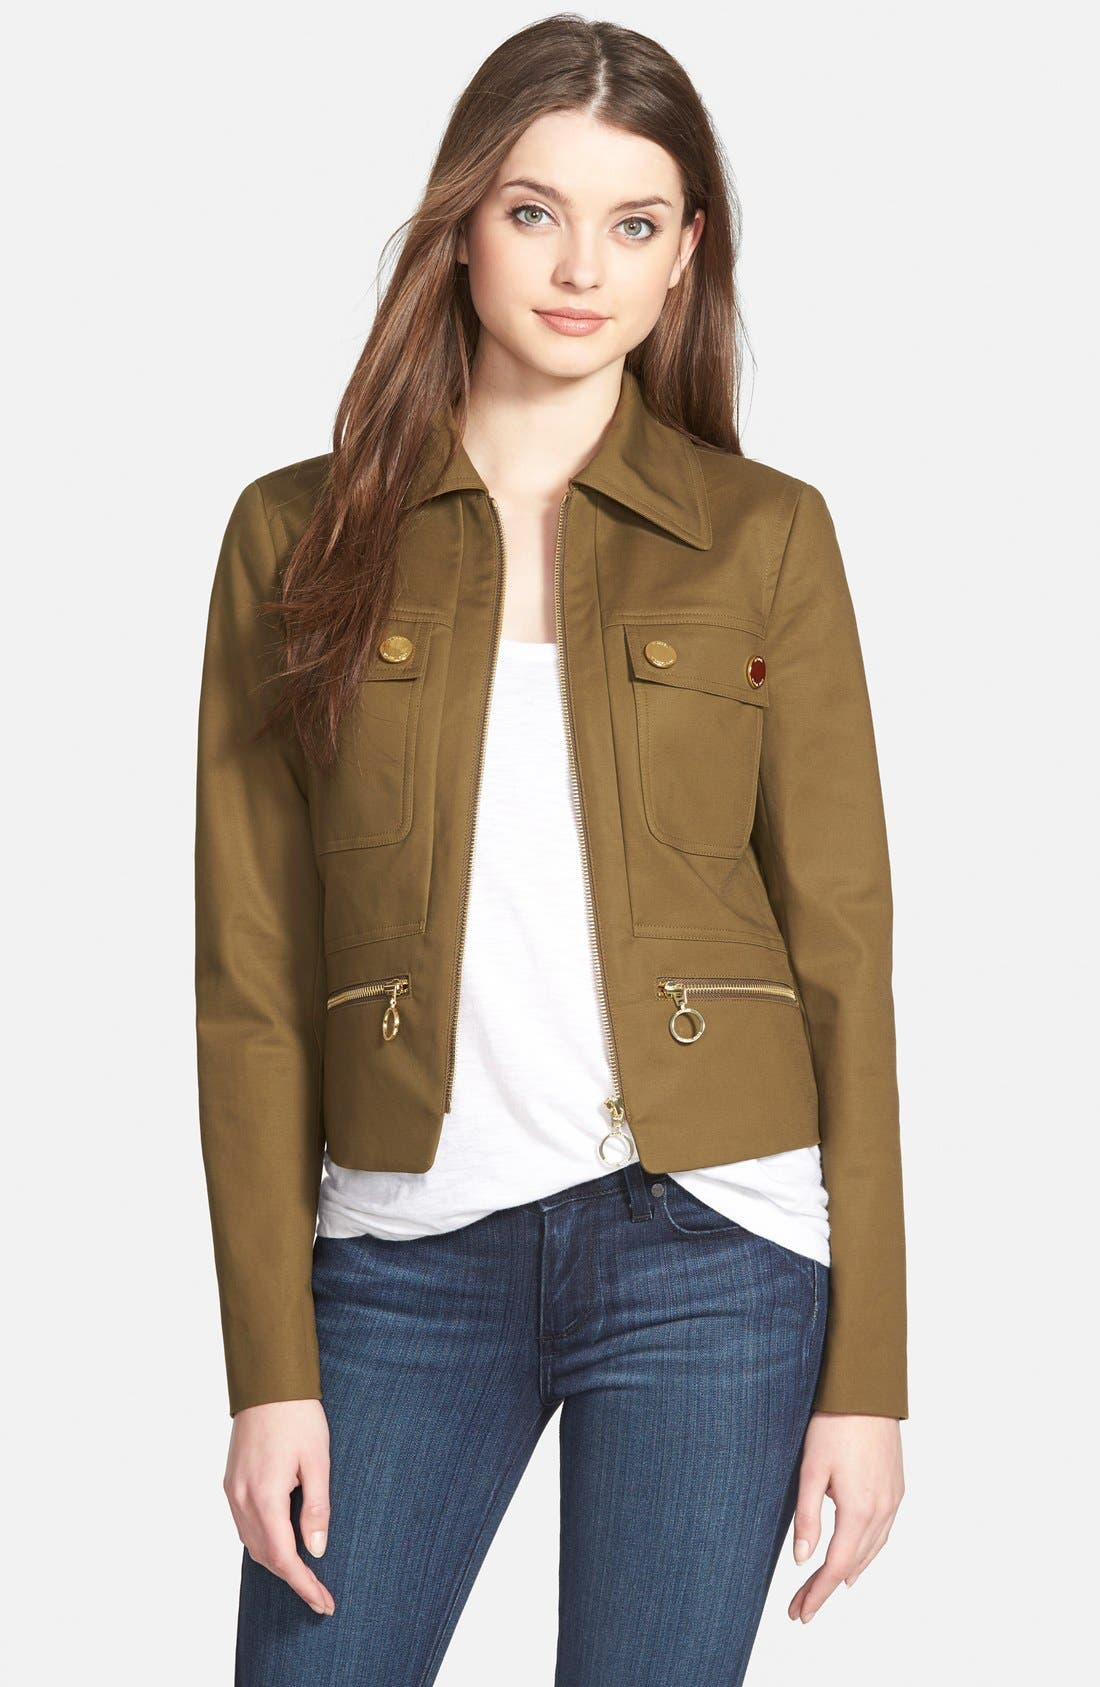 Alternate Image 1 Selected - MICHAEL Michael Kors Paneled Utility Jacket (Regular & Petite)